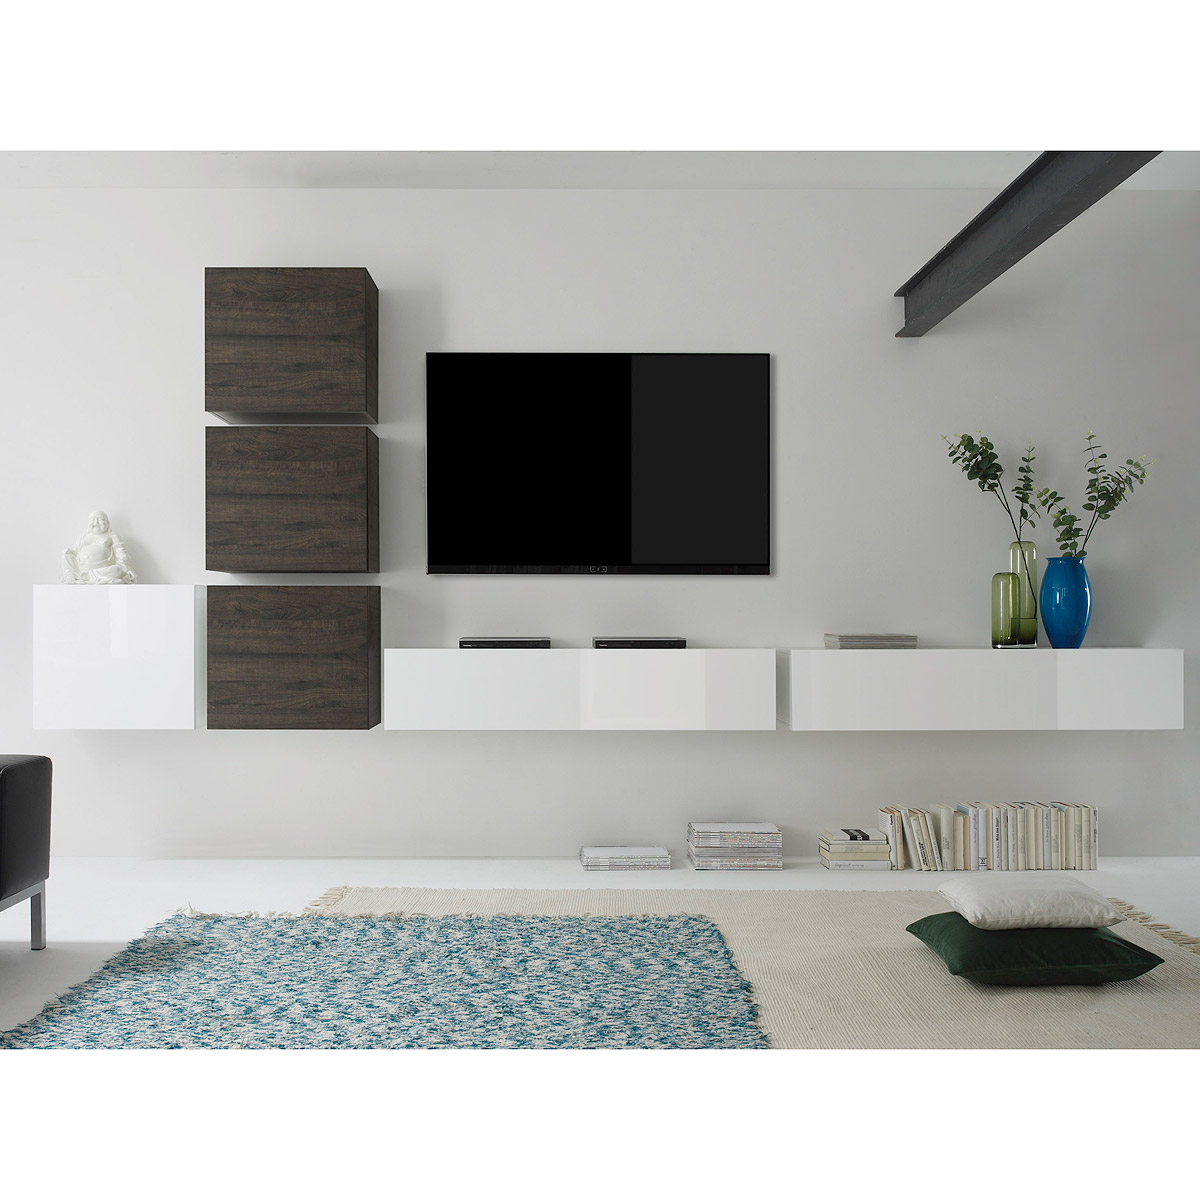 wohnwand cube kombi 7 anbauwand eiche wenge und wei lack. Black Bedroom Furniture Sets. Home Design Ideas